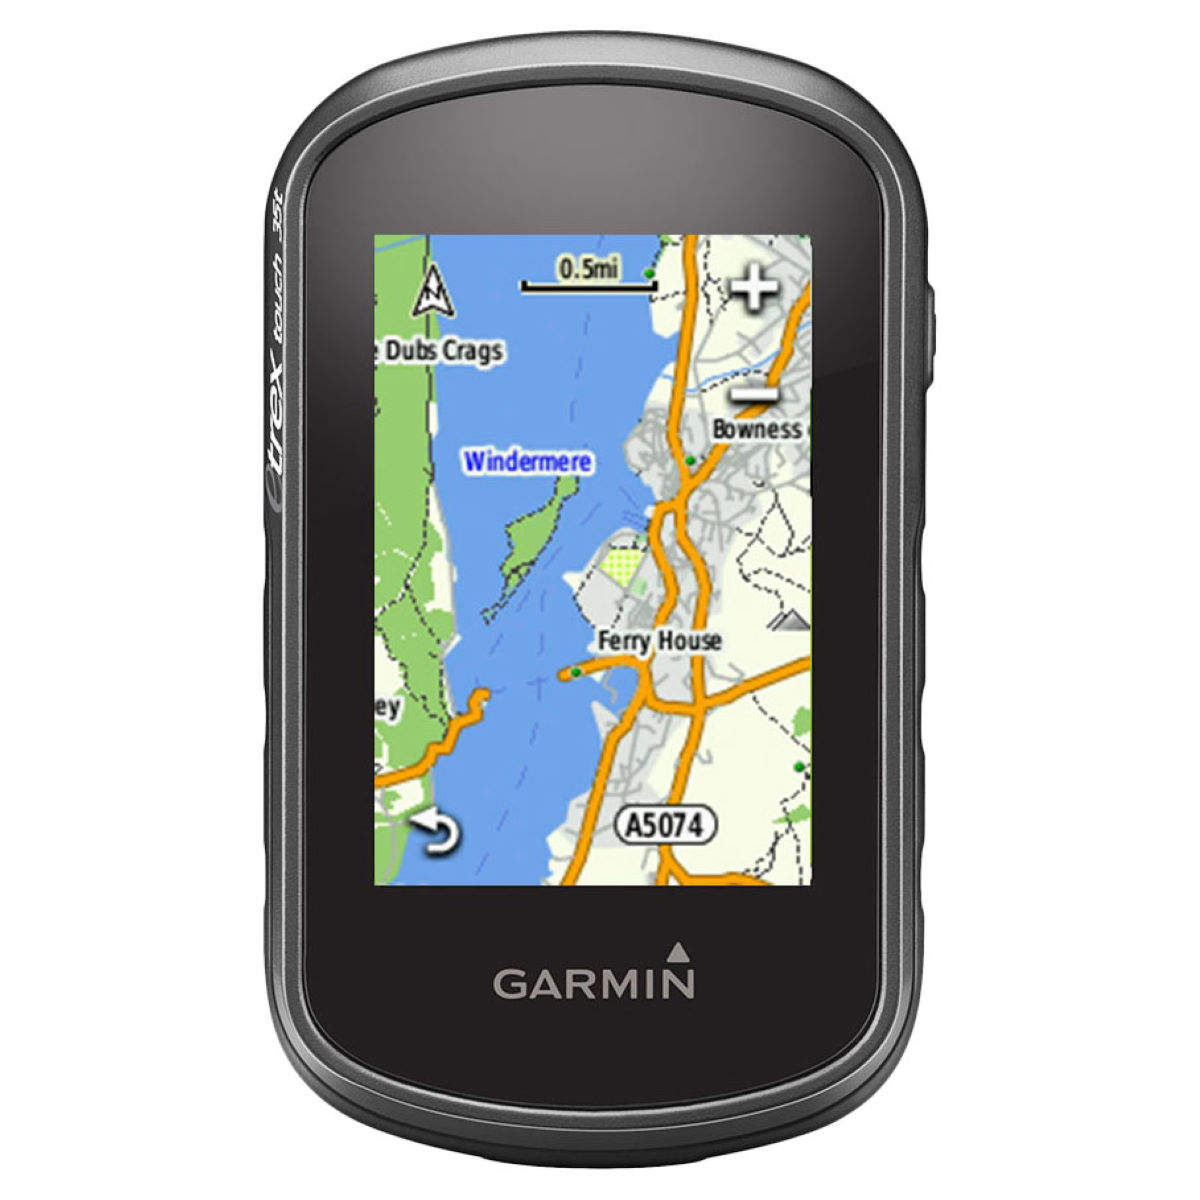 Garmin Garmin eTrex Touch 35 Outdoor GPS   GPS Units